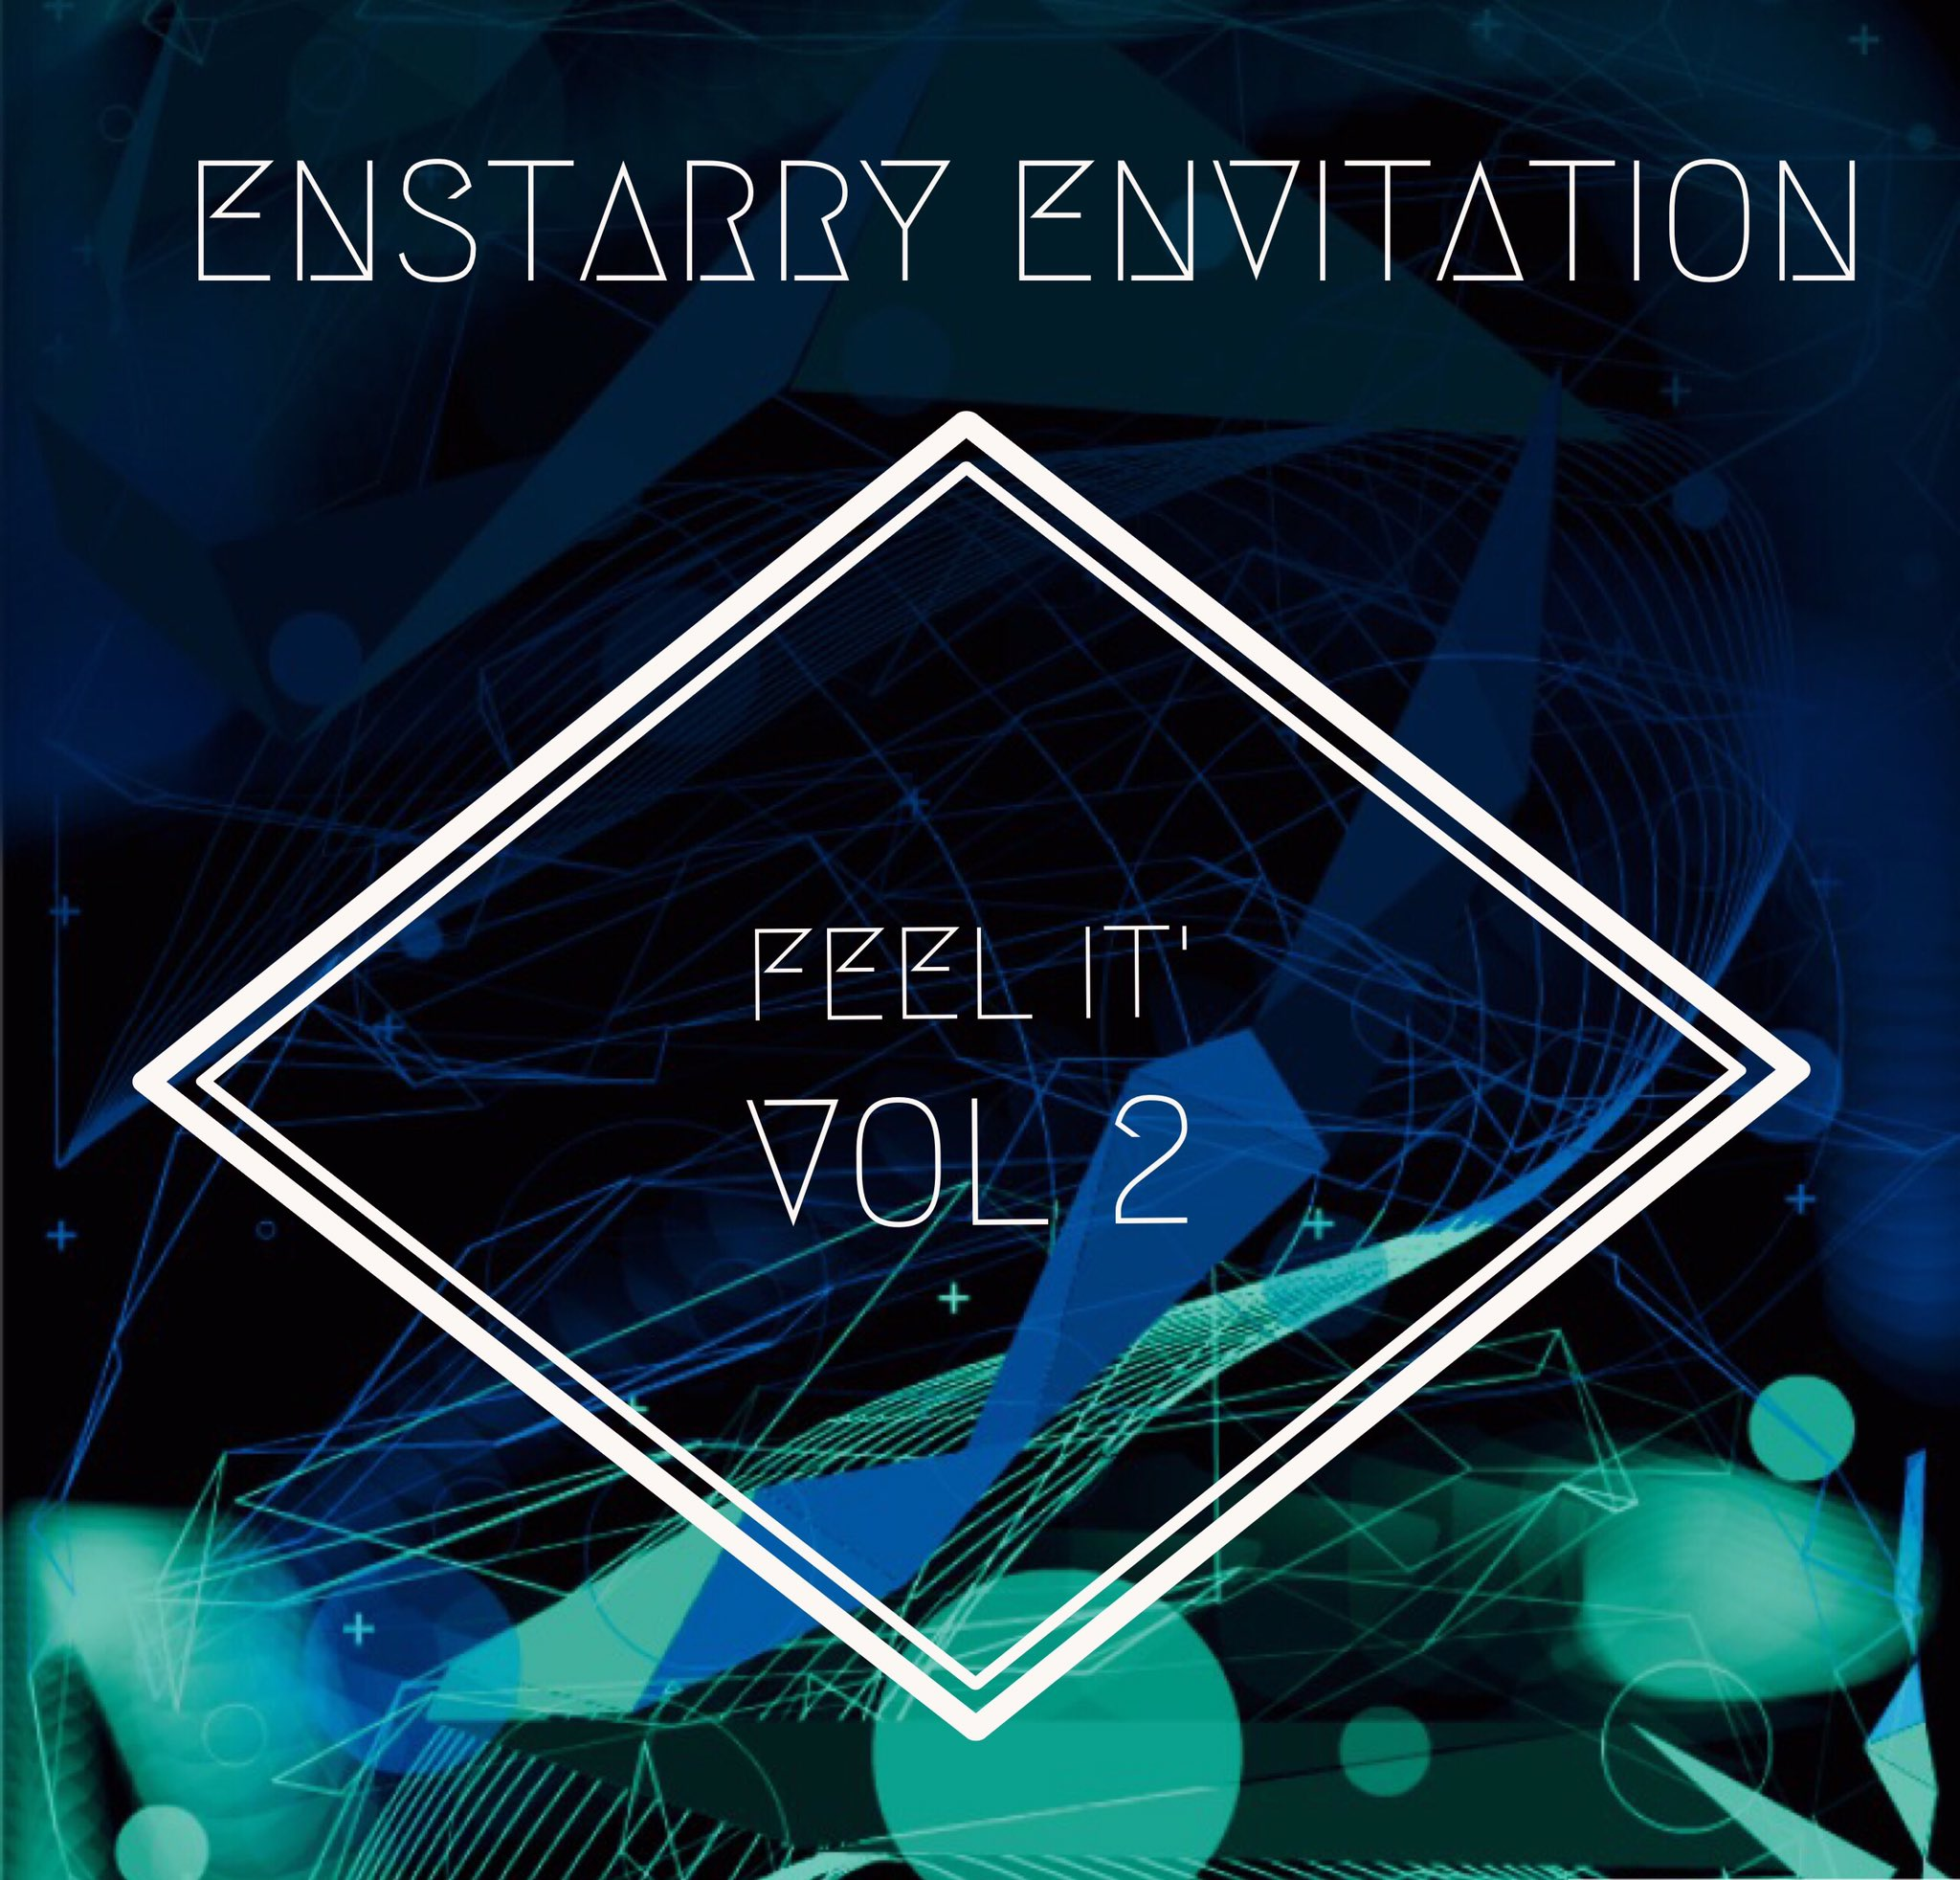 ENstarry ENvitation Present 「Feel it' vol.2」